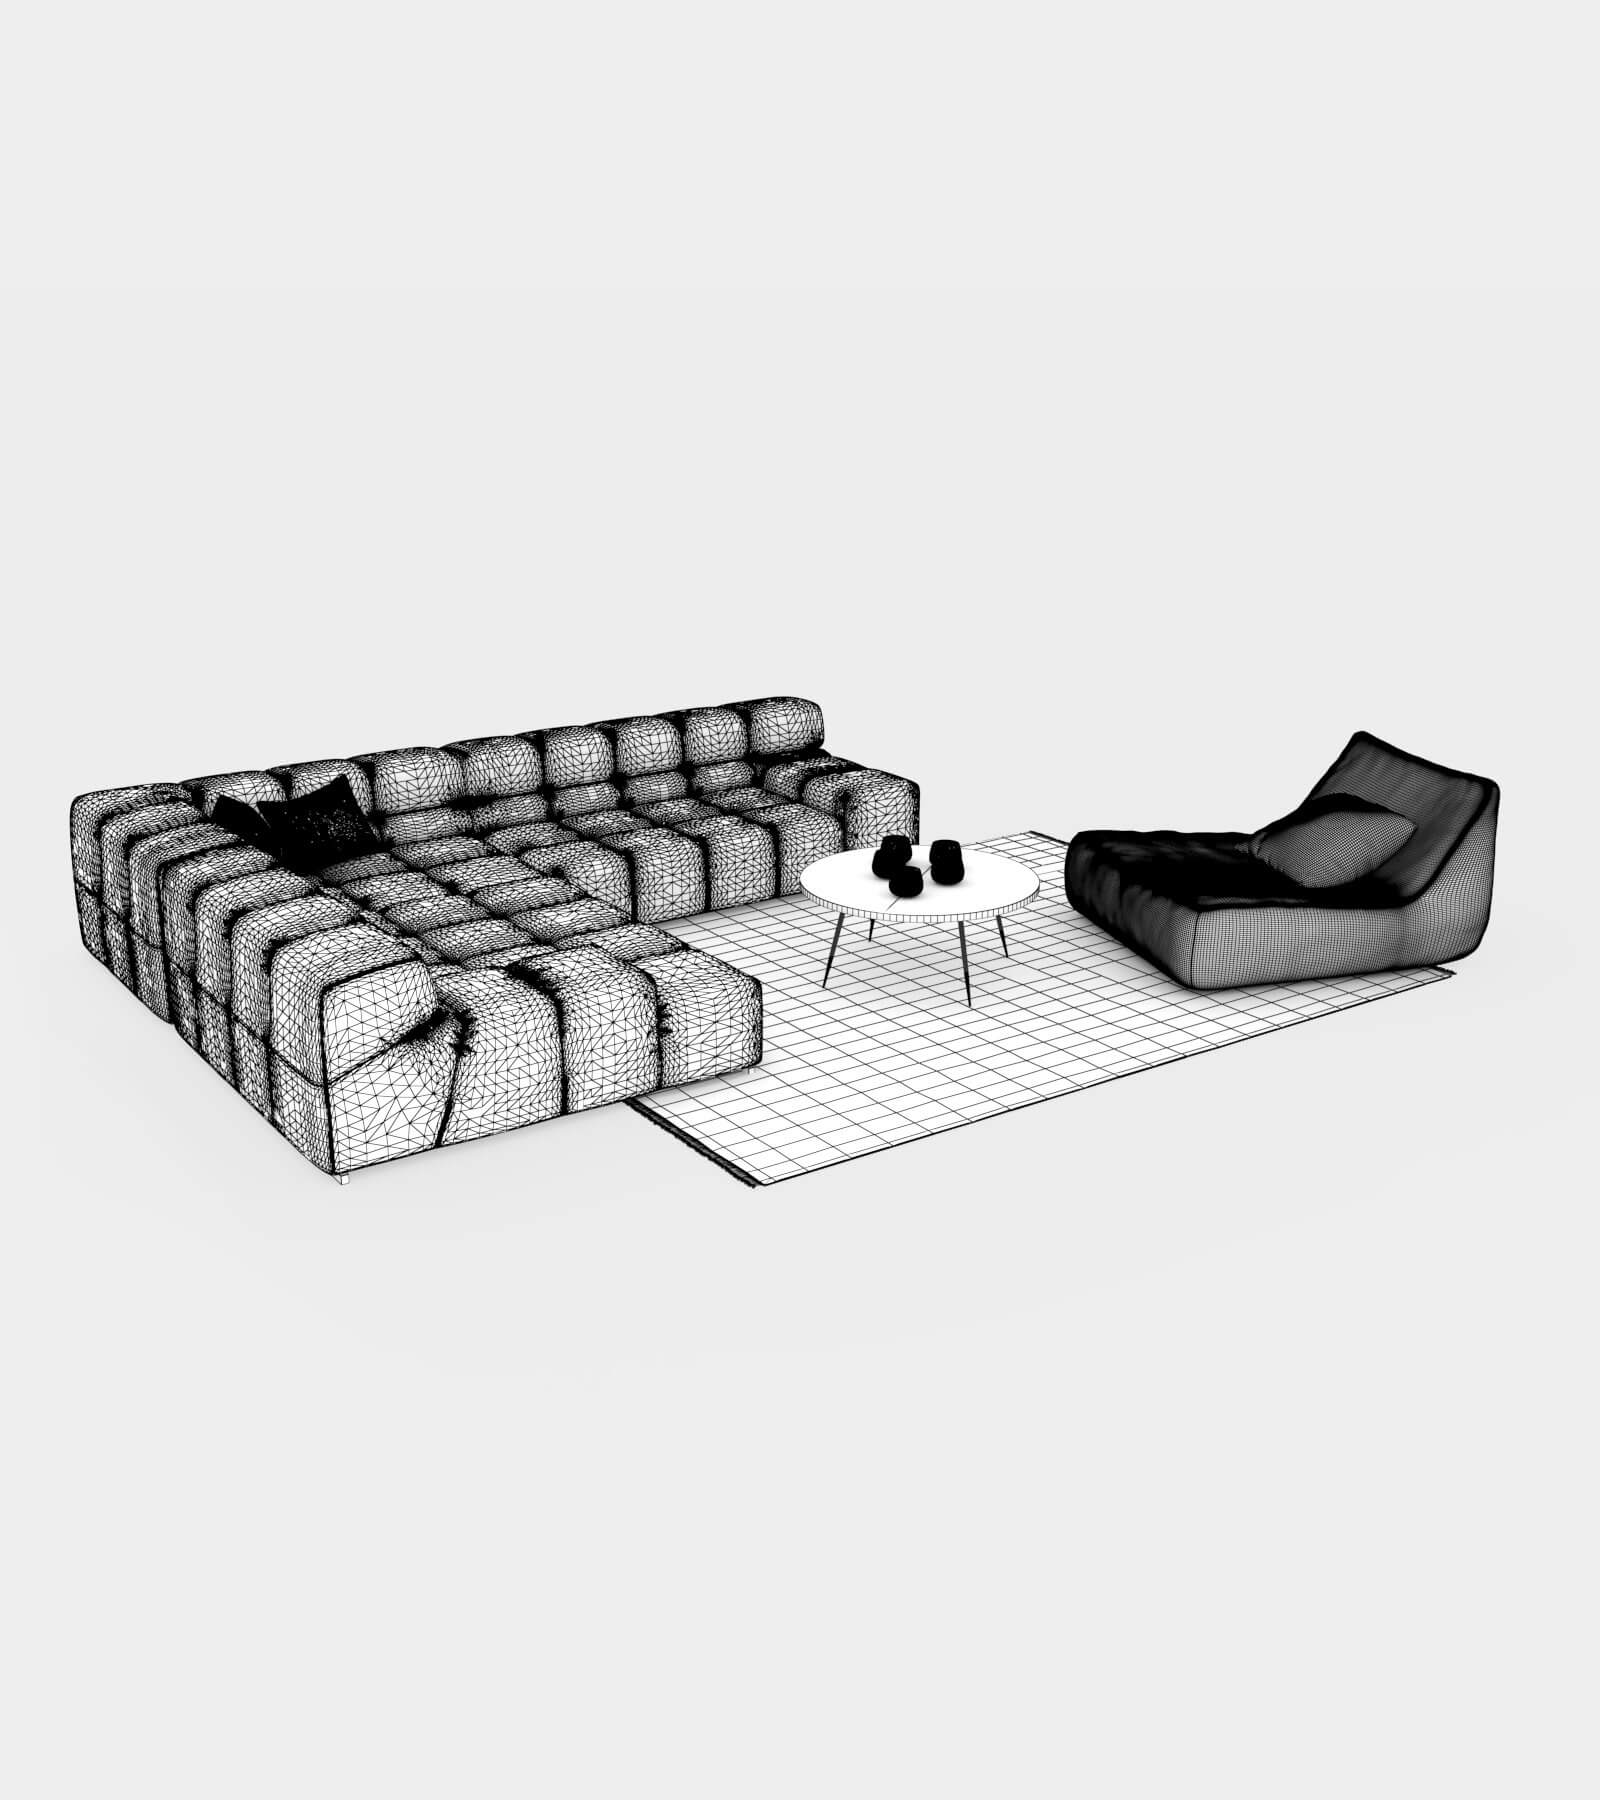 Living room couch set-wire-2-2 3 D Model